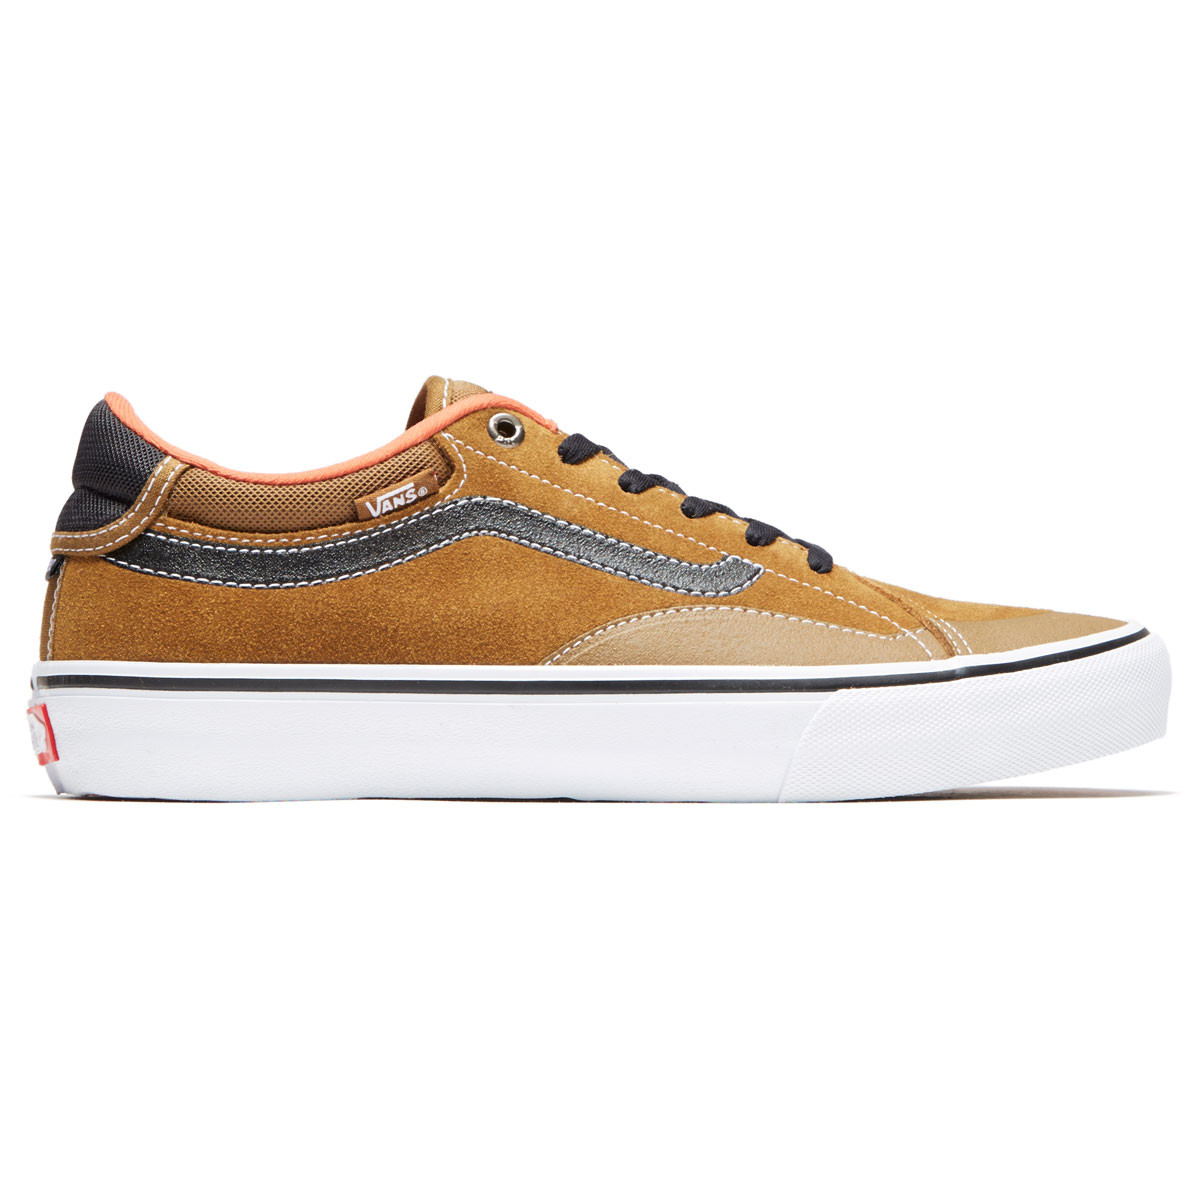 later arriving 2020 cheap matching in colour vans x anti